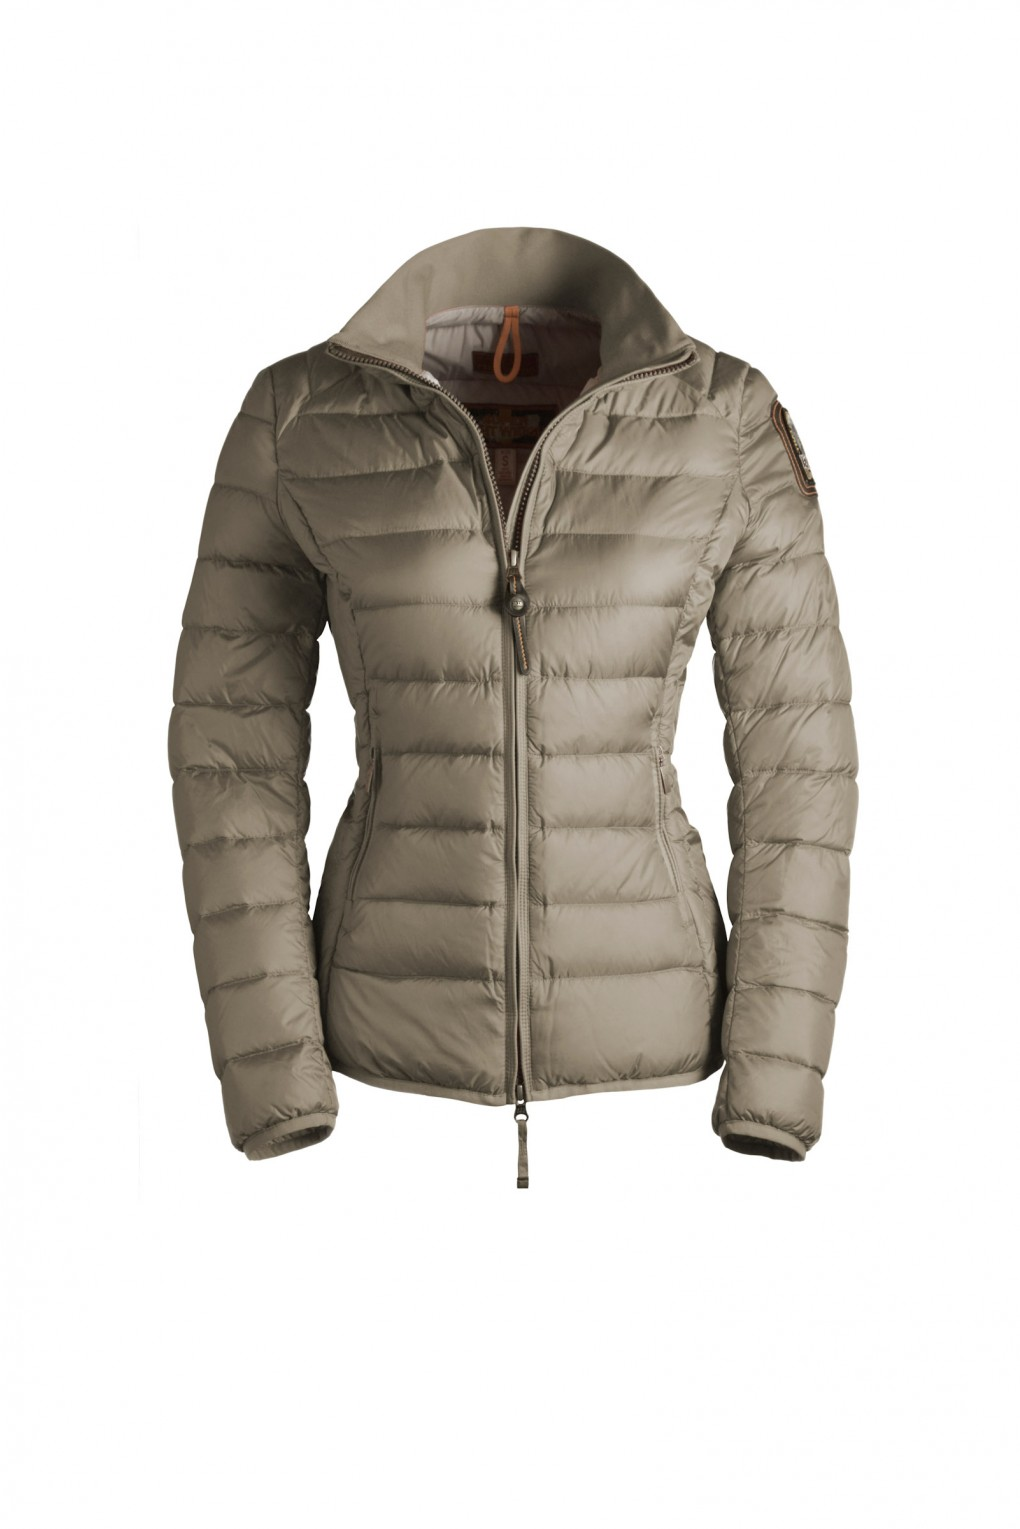 parajumpers GEENA 6 woman outerwear Cappuccino